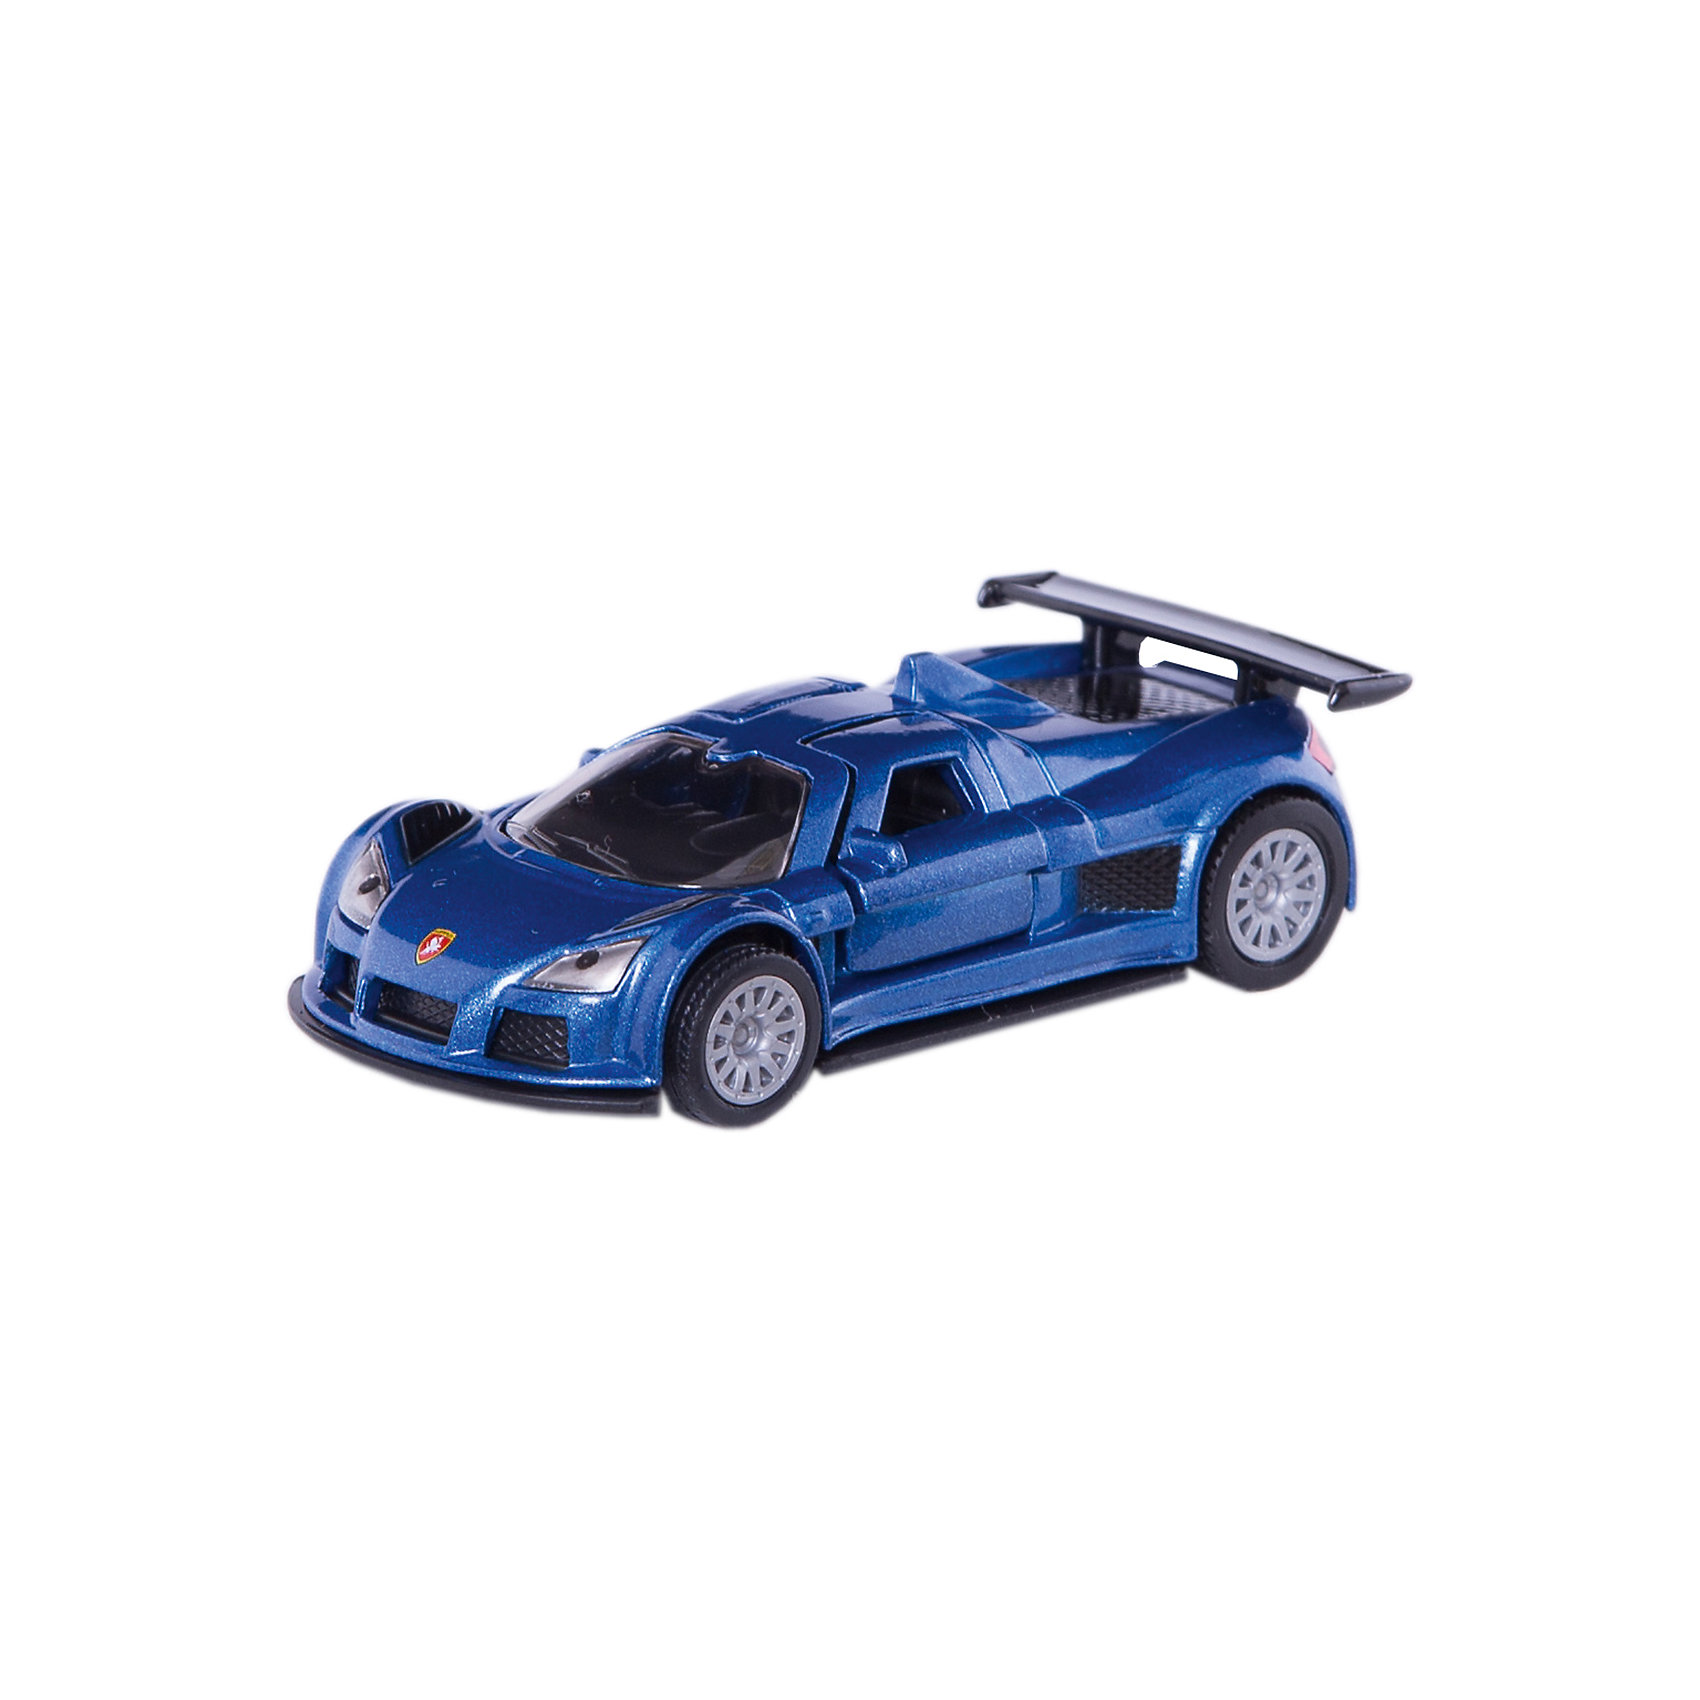 SIKU SIKU 1444 Gumpert Apollo автомобиль siku бугатти eb 16 4 1 55 красный 1305